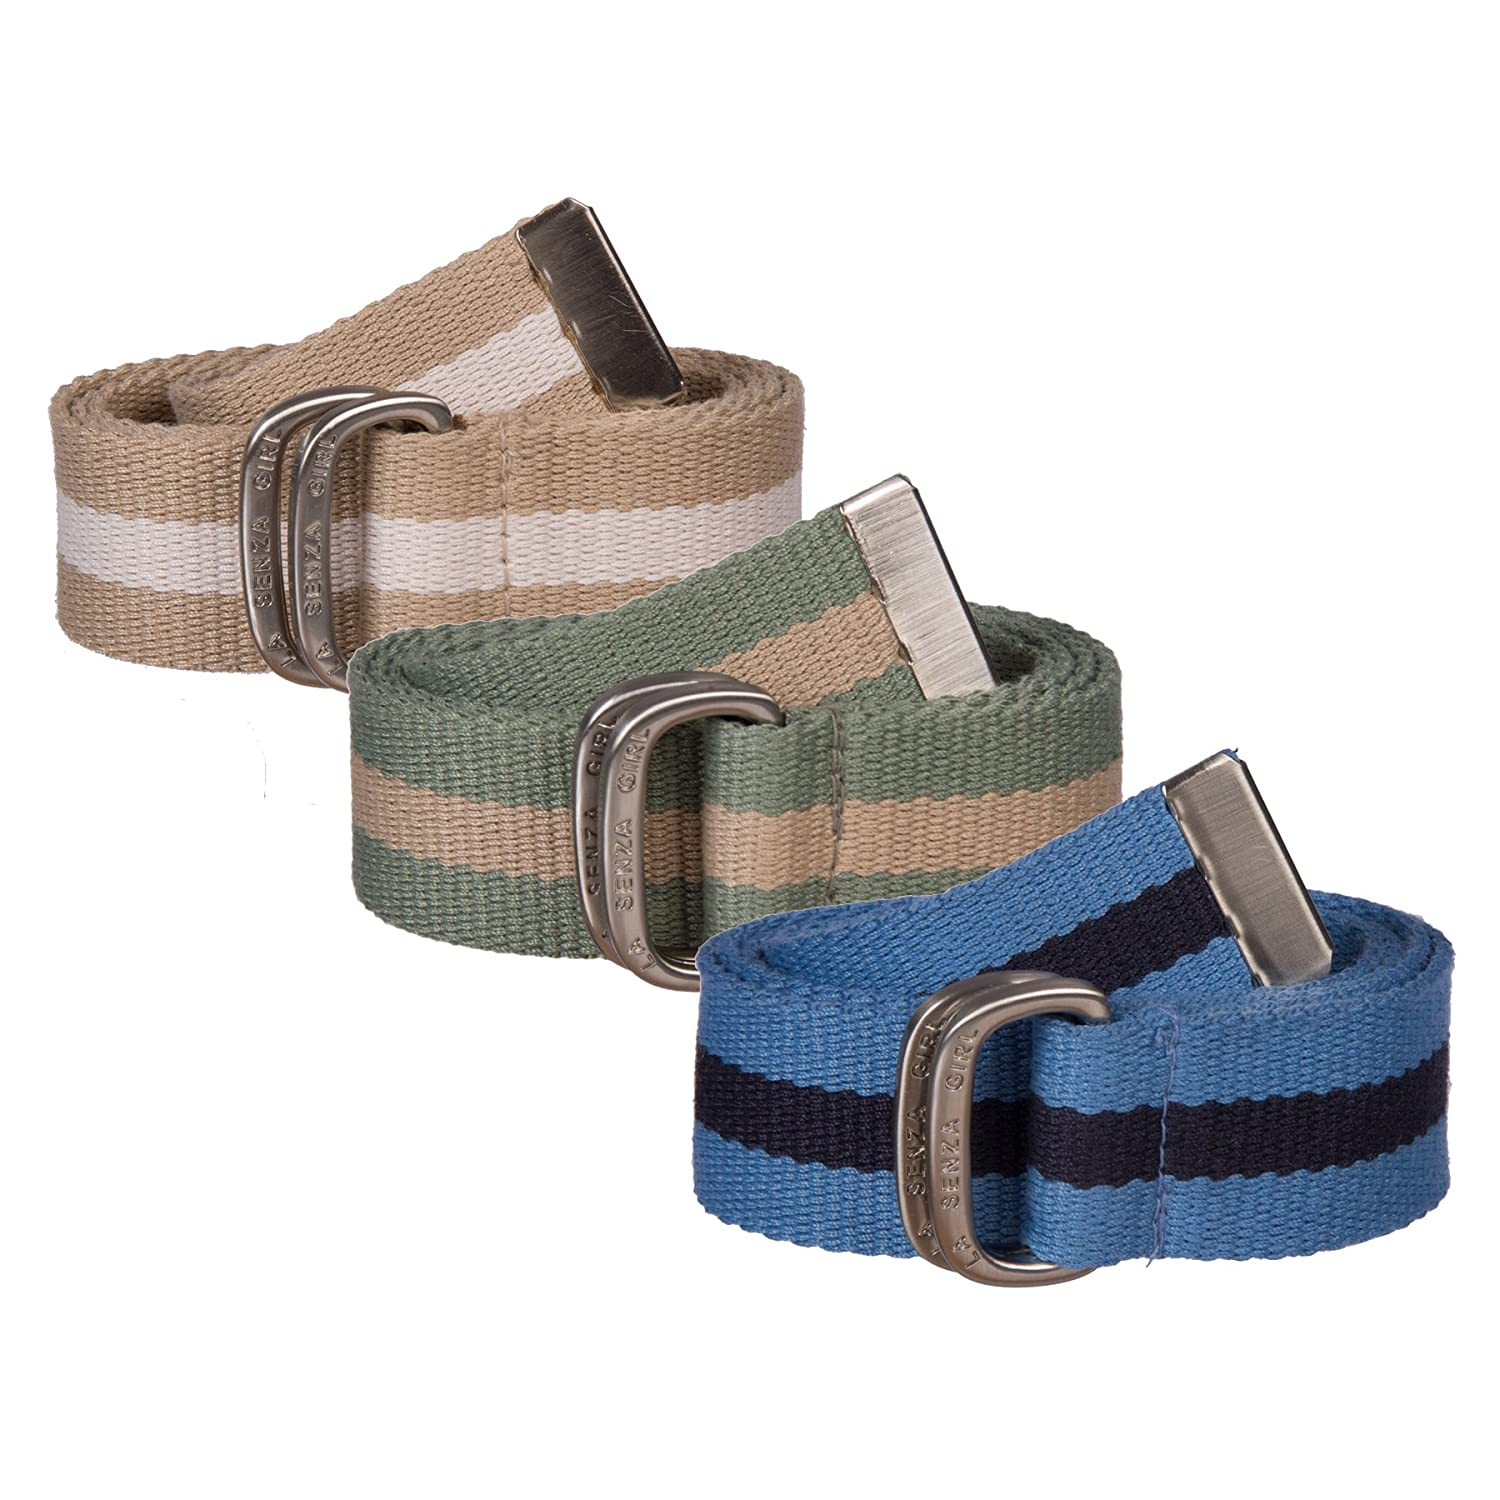 Sunny Belt Girls 3 pack Canvas 1 1/4-Inch-Wide O/S Belts Fits Up To 36 Inches KDC_SUN_7611_A21_3PK